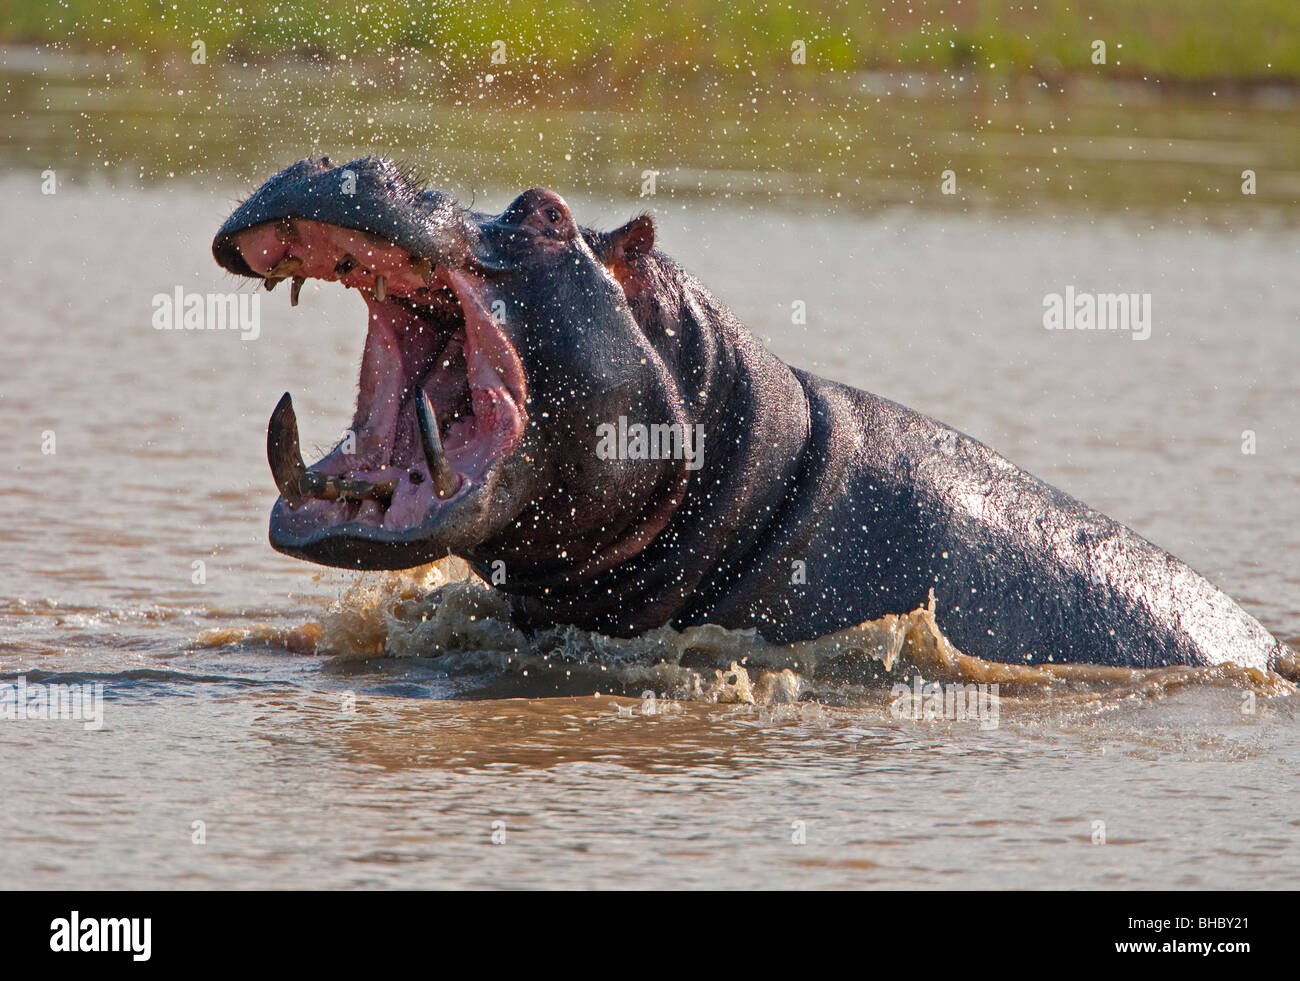 hippo attack Stock Photo: 27922217 - Alamy